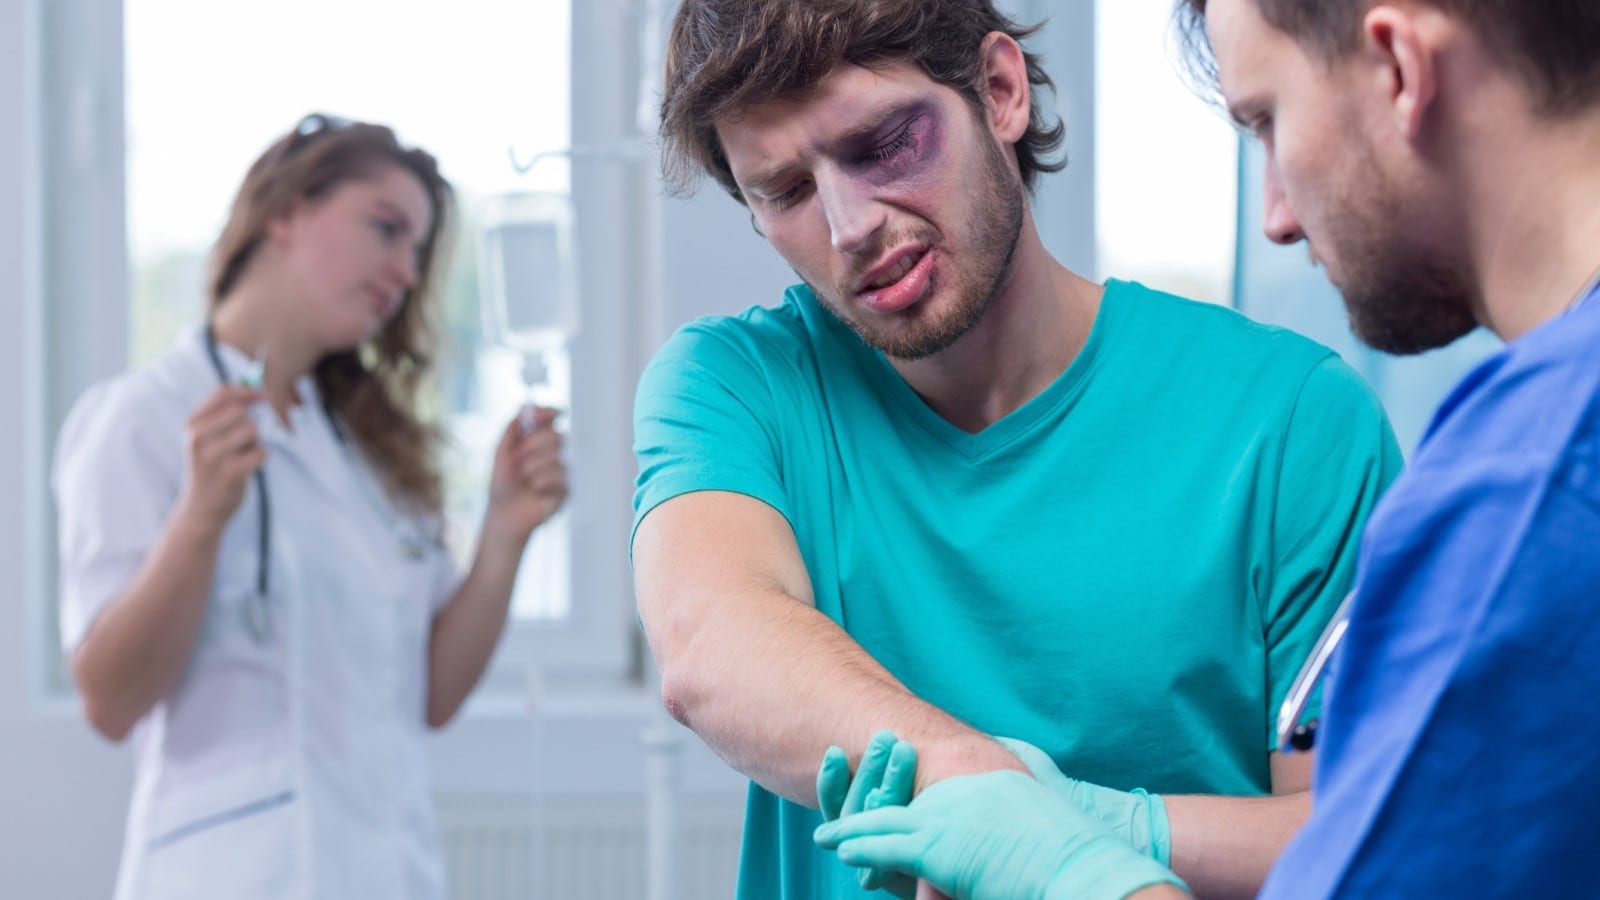 Man With Injured Eye And Arm Being Examined By Nurse